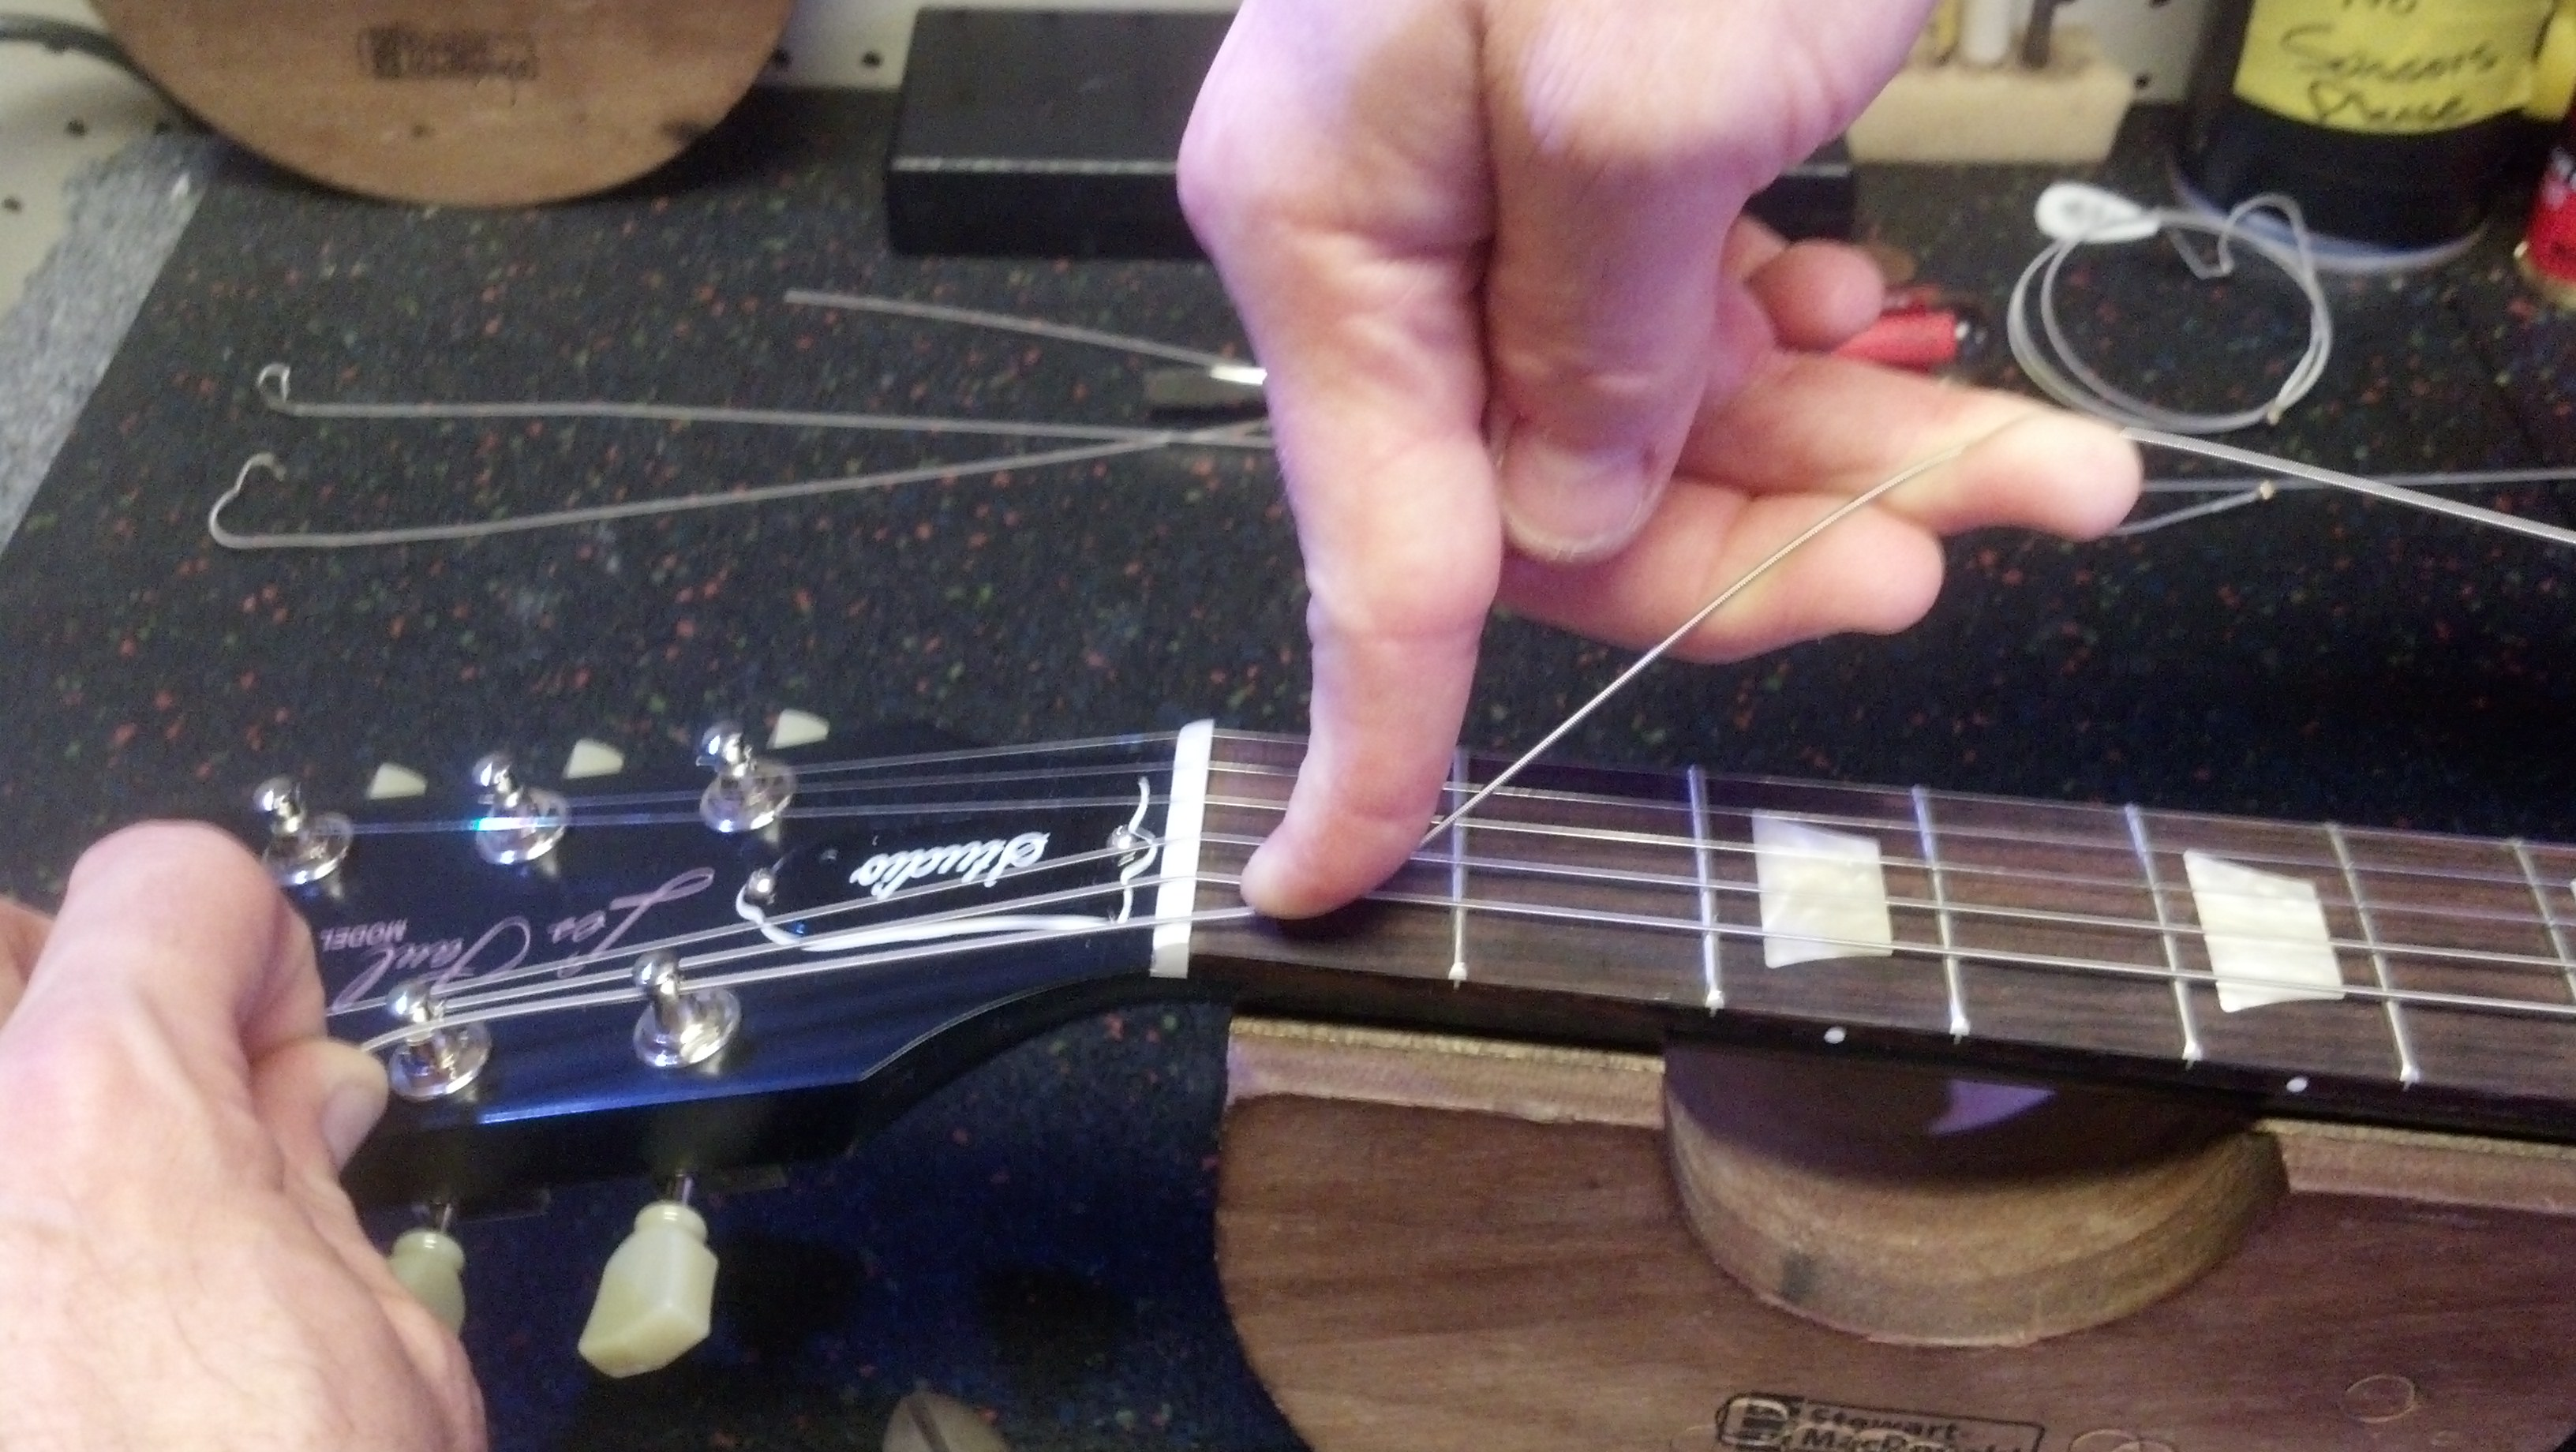 How To Change Electric Guitar Strings Sweetwater What Wiring Mods Do You Have Page 3 Fender Stratocaster Figure 11